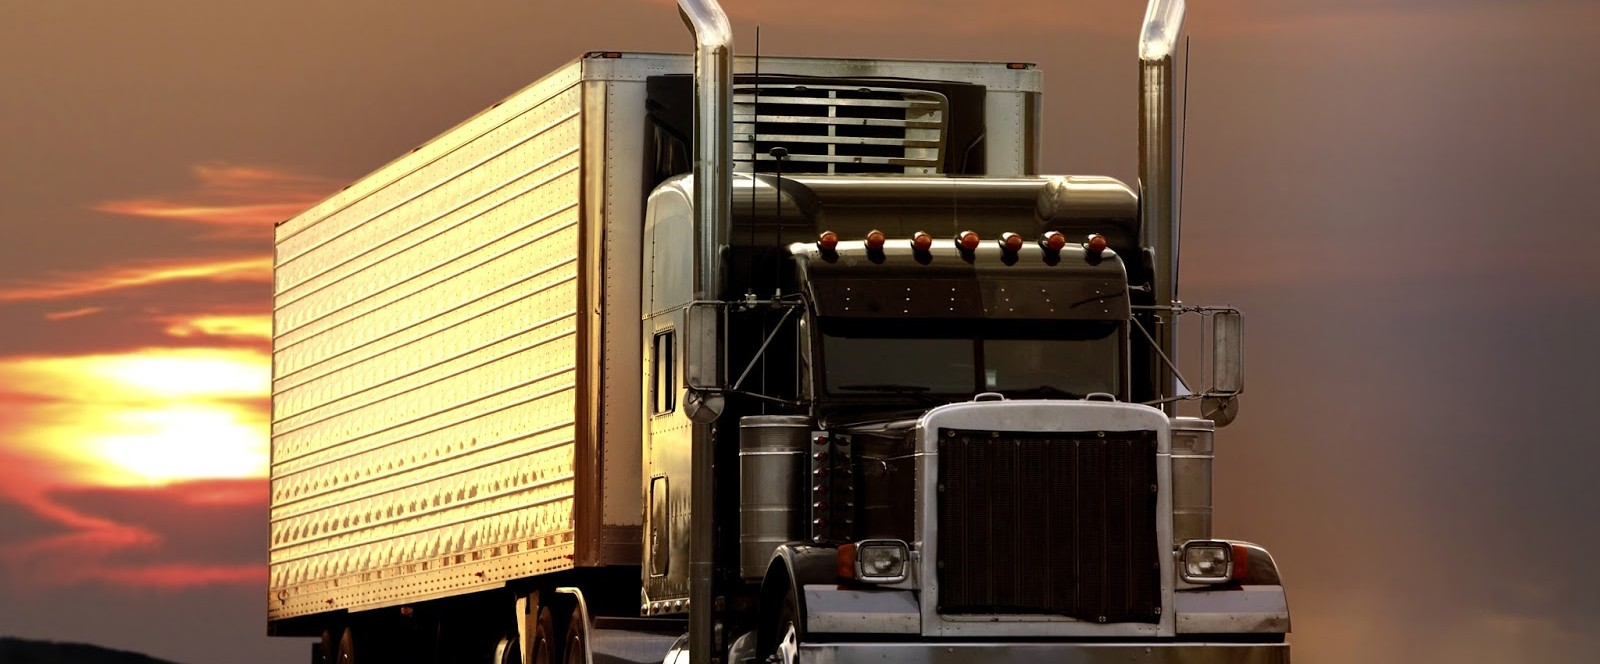 Trucking Industry Finds Multiple Growth Opportunities In The Days Ahead